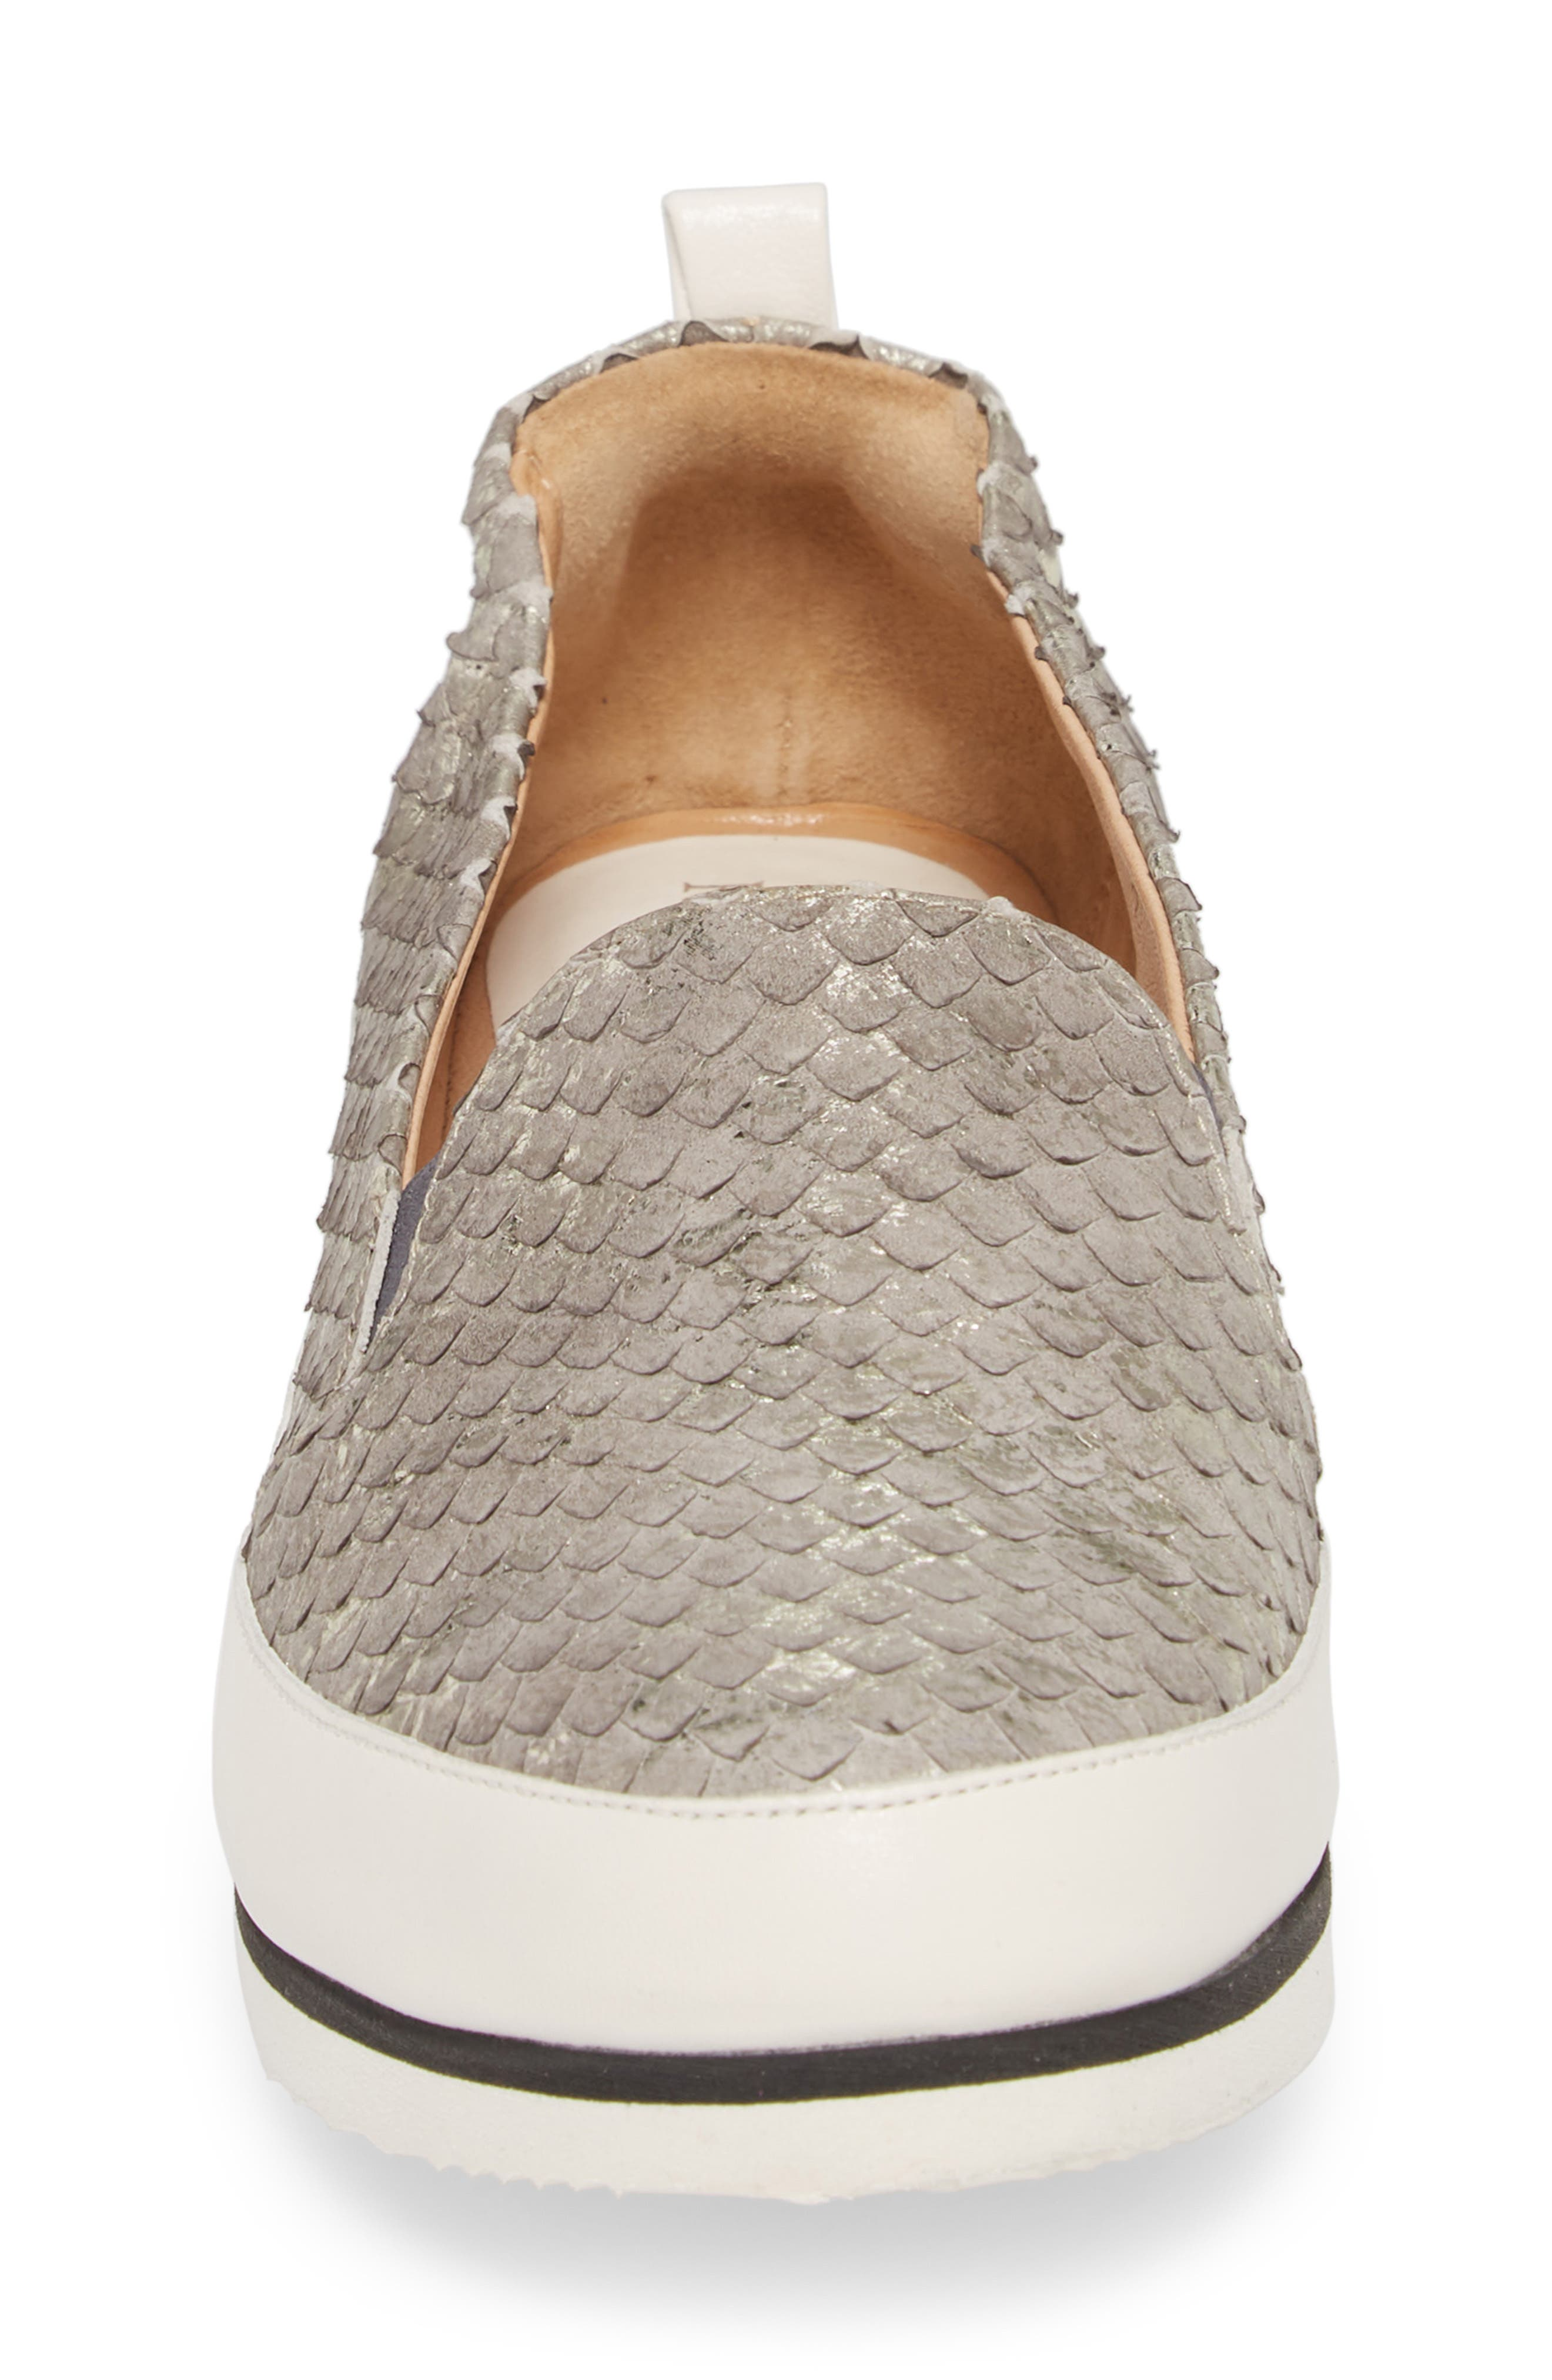 Nell Slip-On Sneaker,                             Alternate thumbnail 4, color,                             Pewter Leather